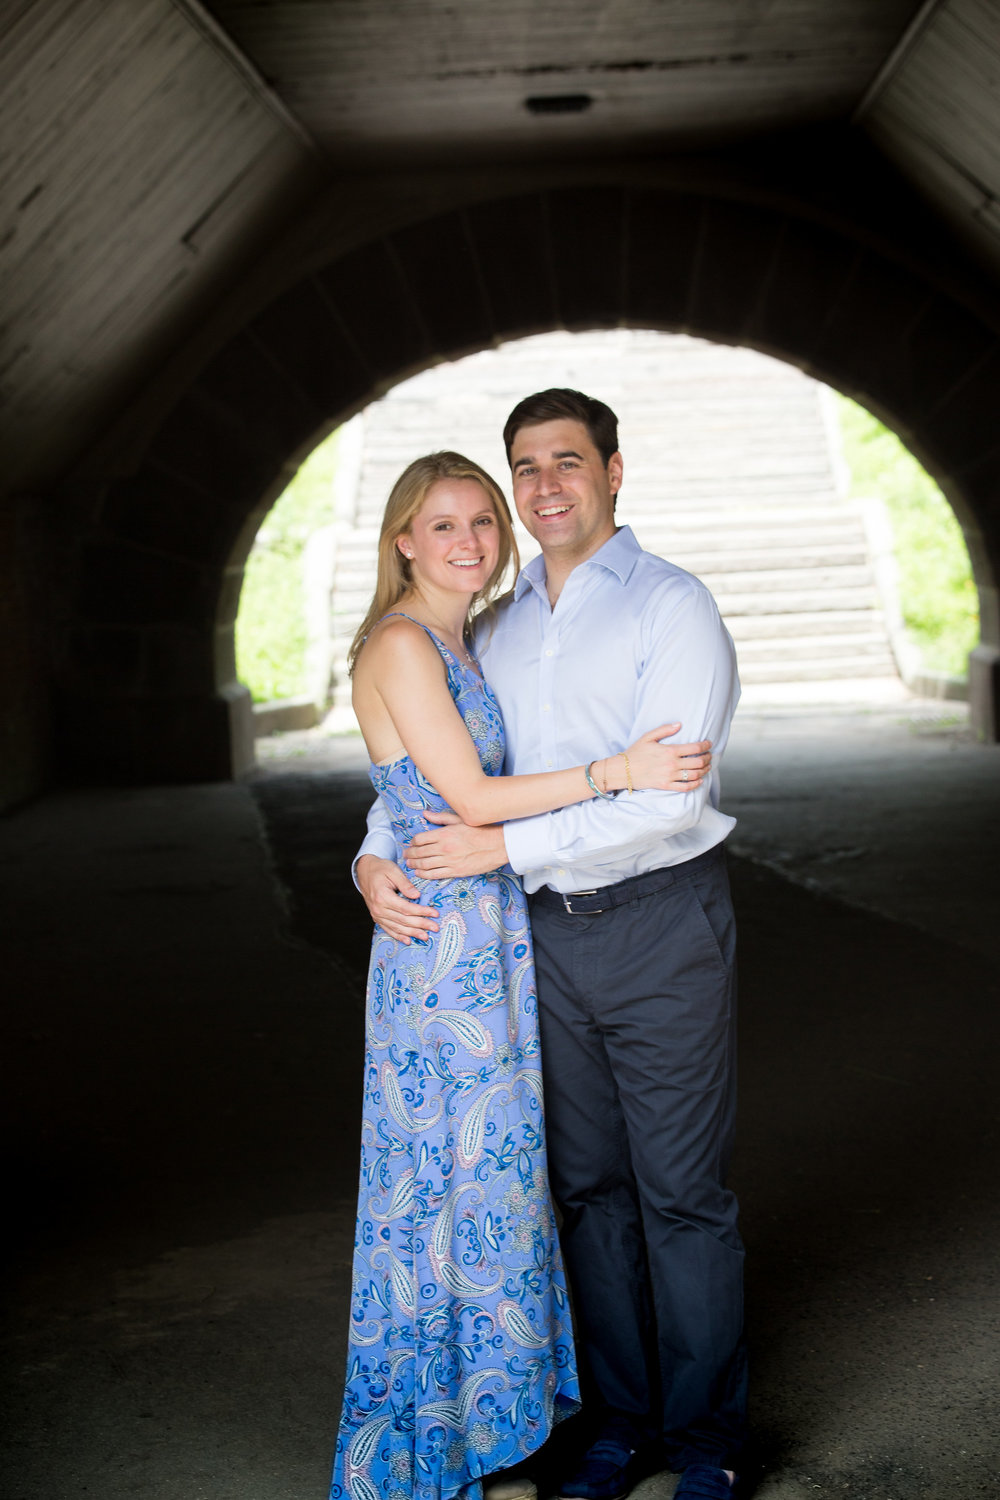 engagement-shoot-central-park-nyc-104.jpg